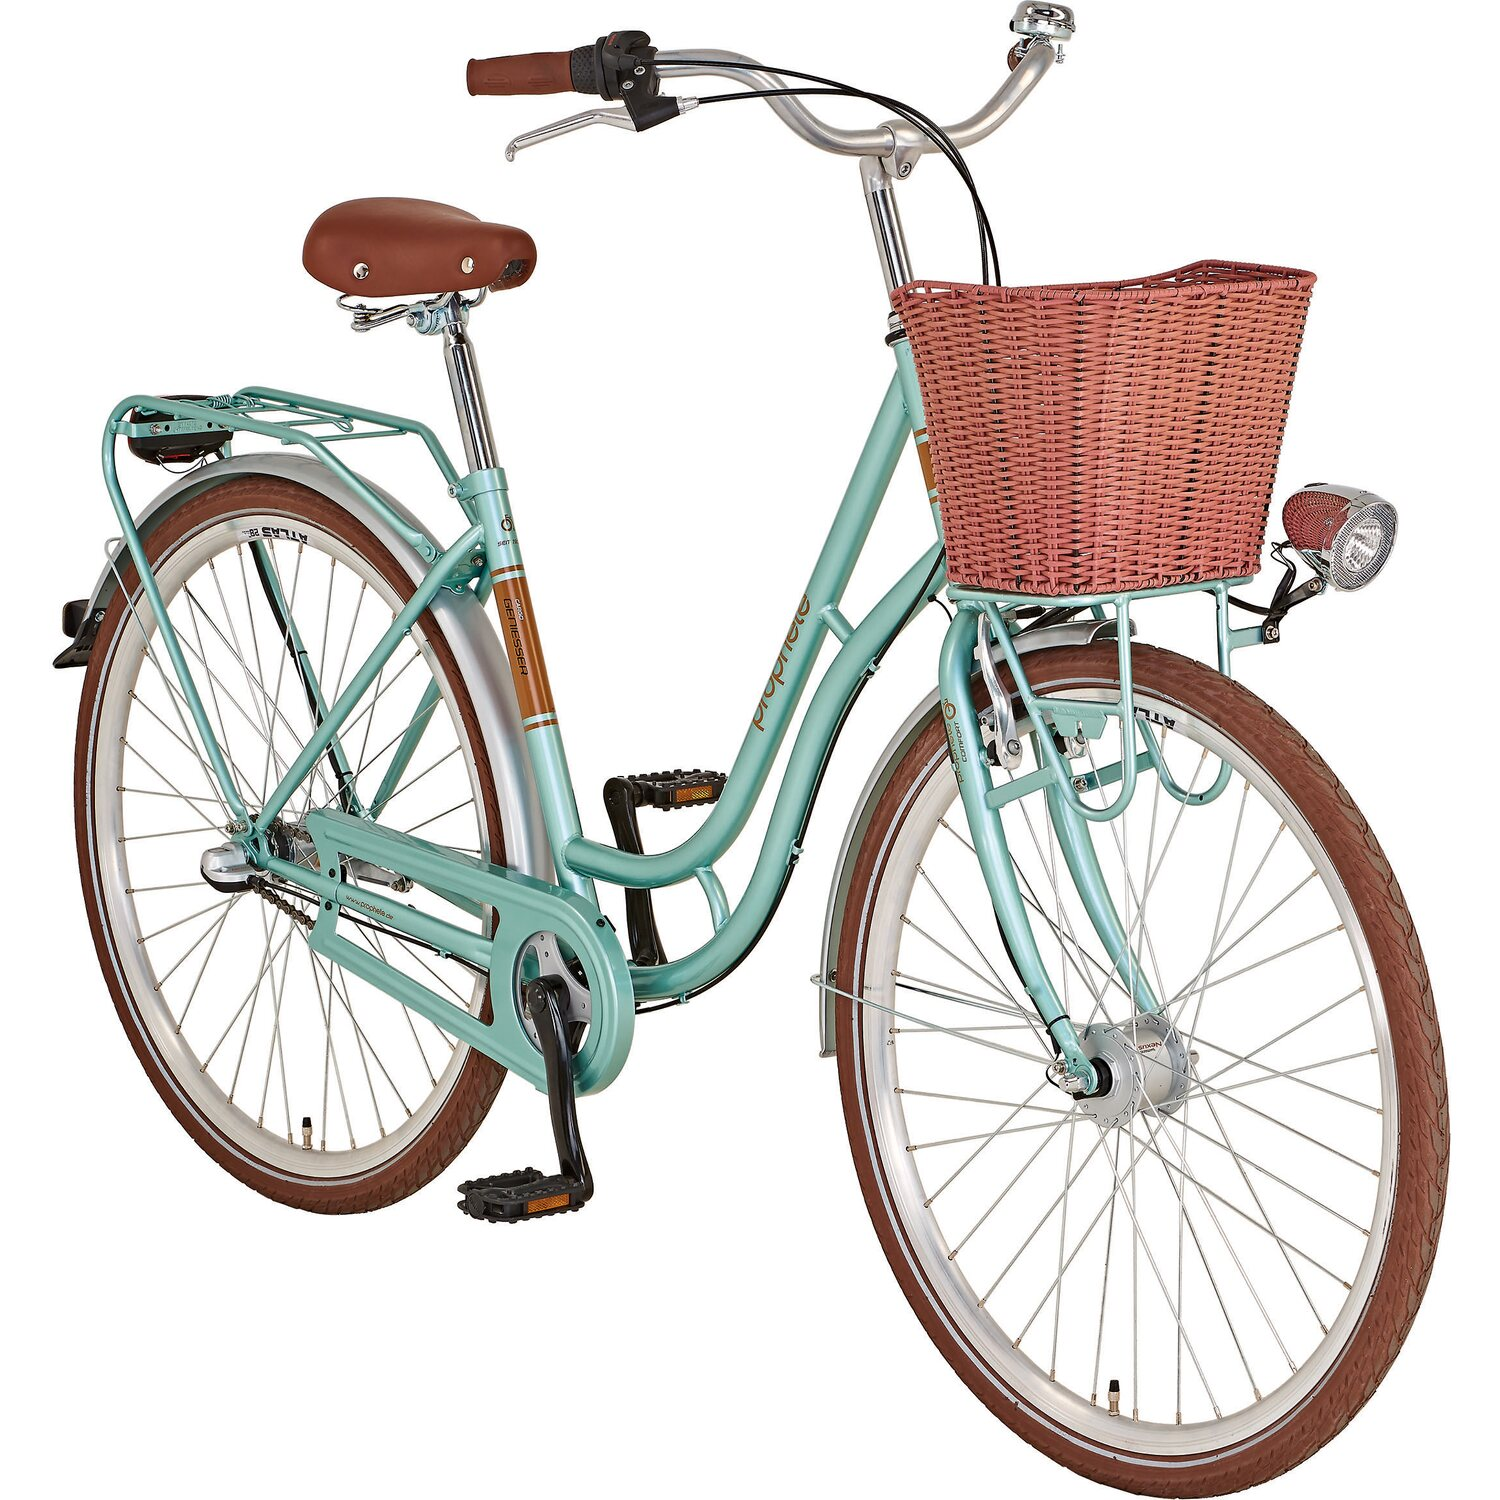 e bike retro damen bergamont e summerville damen retro pedelec elektro fahrrad ice blau 2017. Black Bedroom Furniture Sets. Home Design Ideas